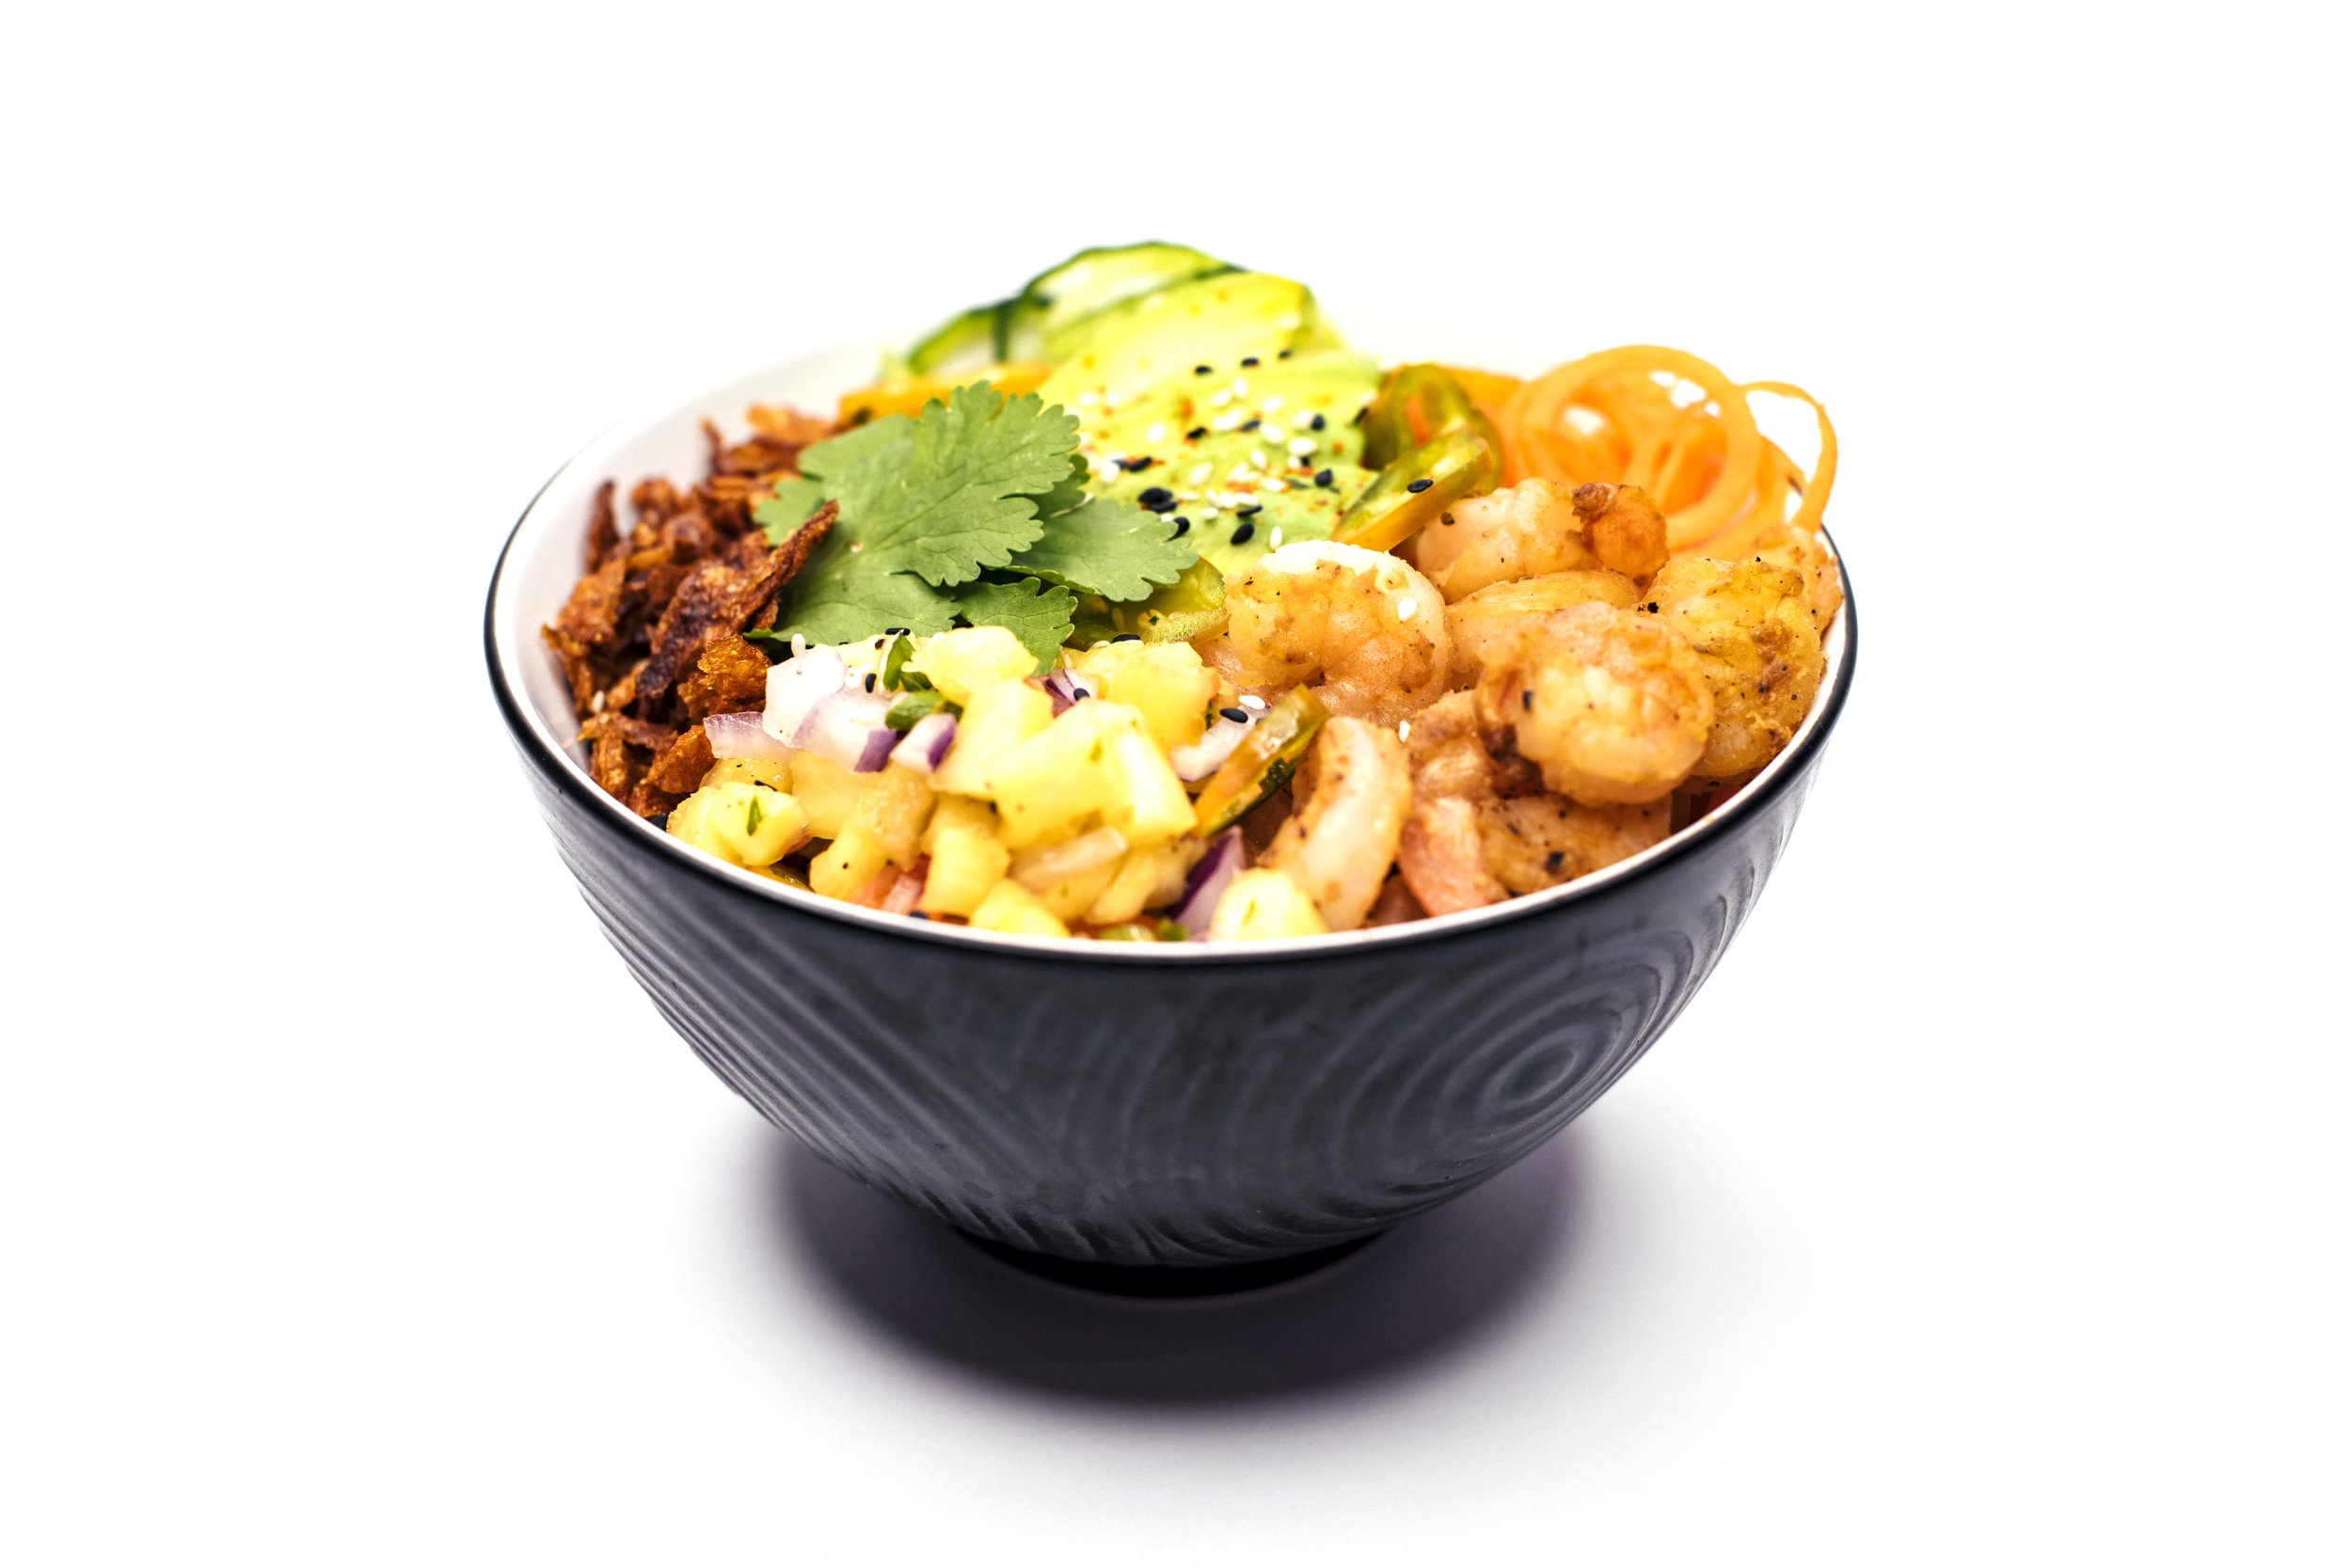 CRUNCHY PRAWN BOWL - Pan Fried Prawns, Rice, Cucumber, Carrot, Coriander, Jalapeños, Crispy Potato Flakes, Creamy Wasabi Sauce